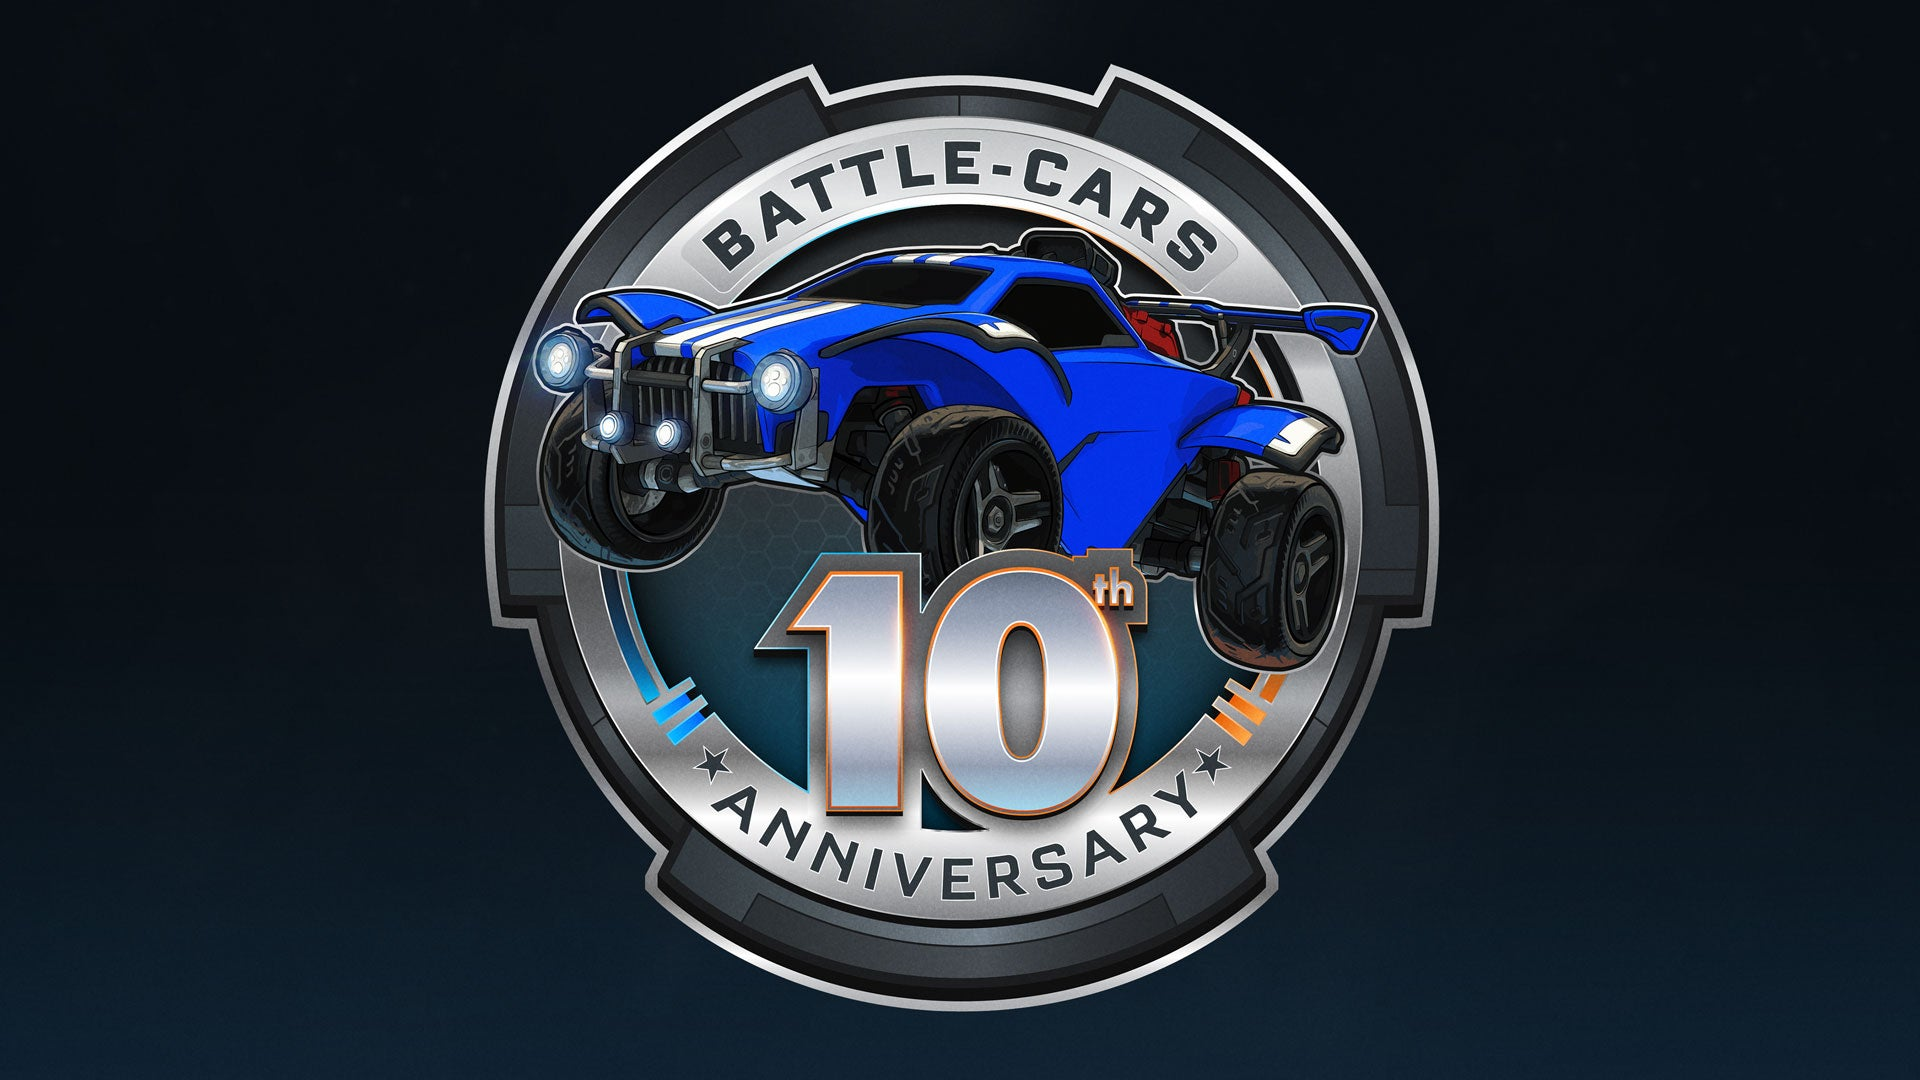 Rocket League New Car >> Tournaments Beta Coming to Steam February 21-23   Rocket ...